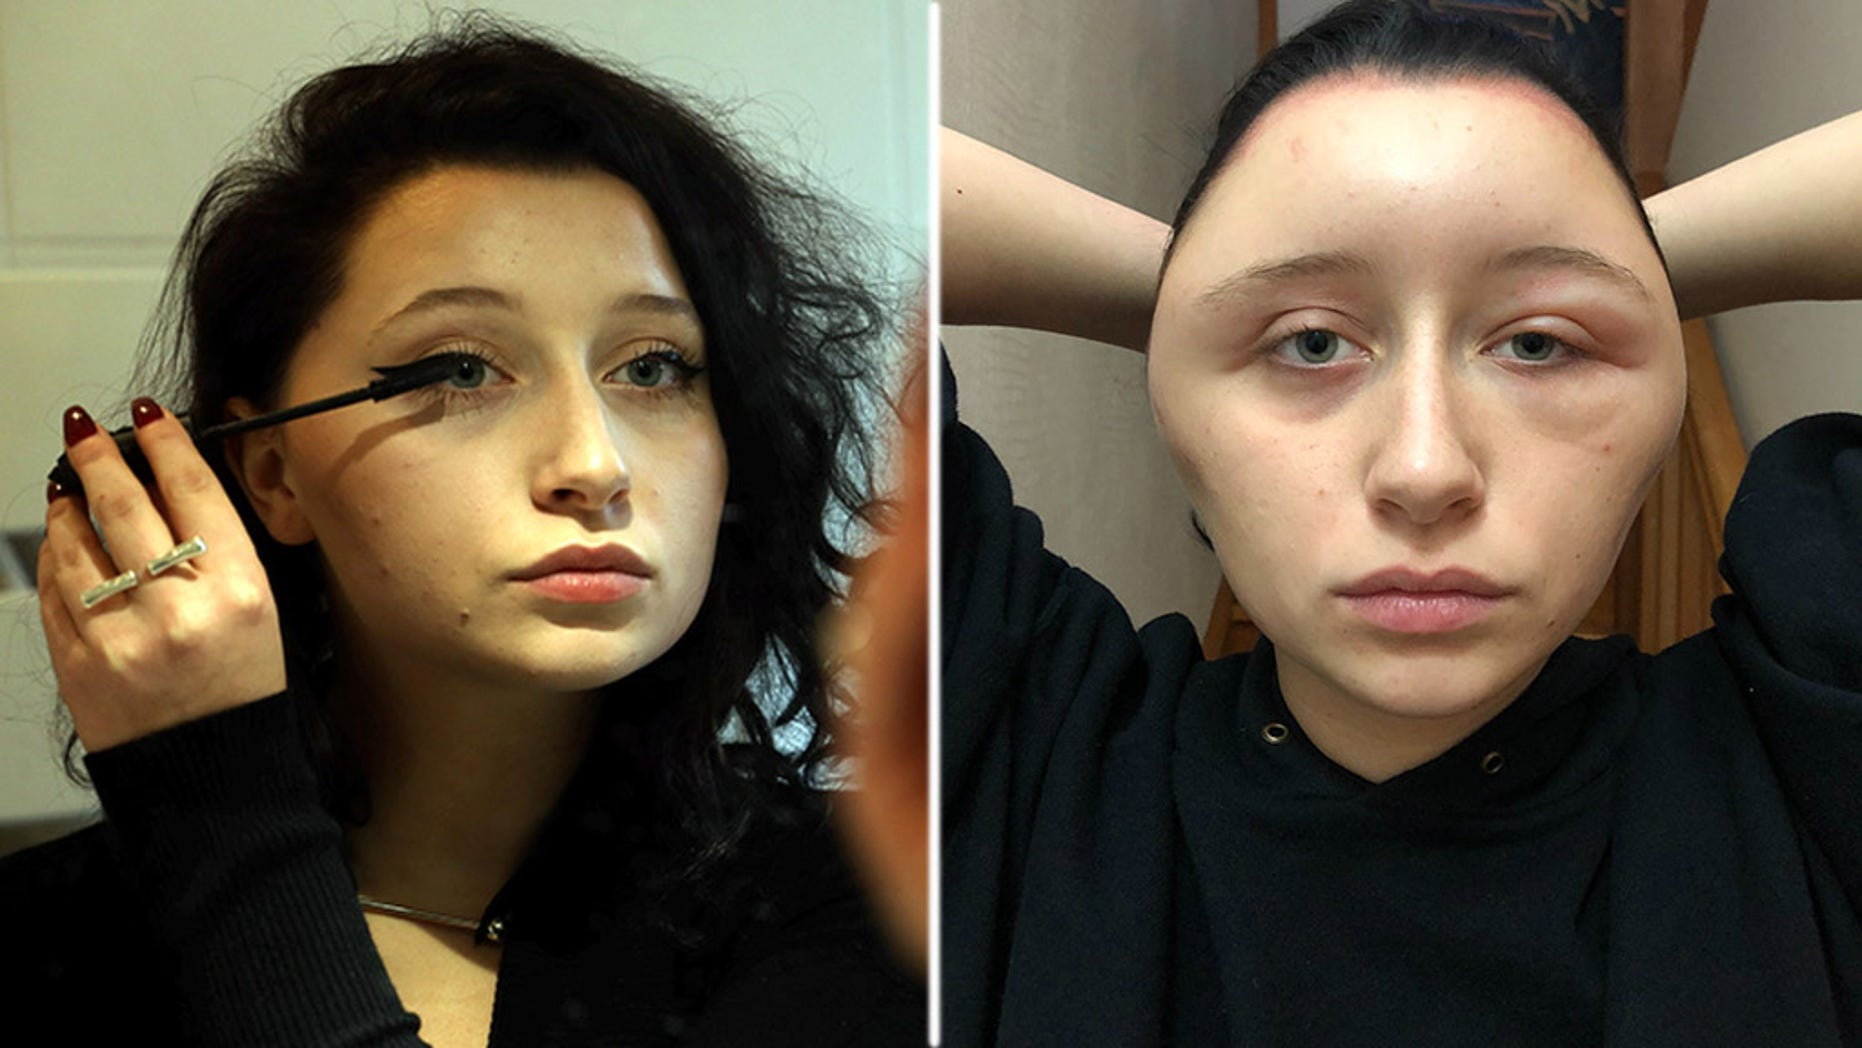 A French Woman Says Her Head Became Swollen After She Suffered An Allergic Reaction To Hair